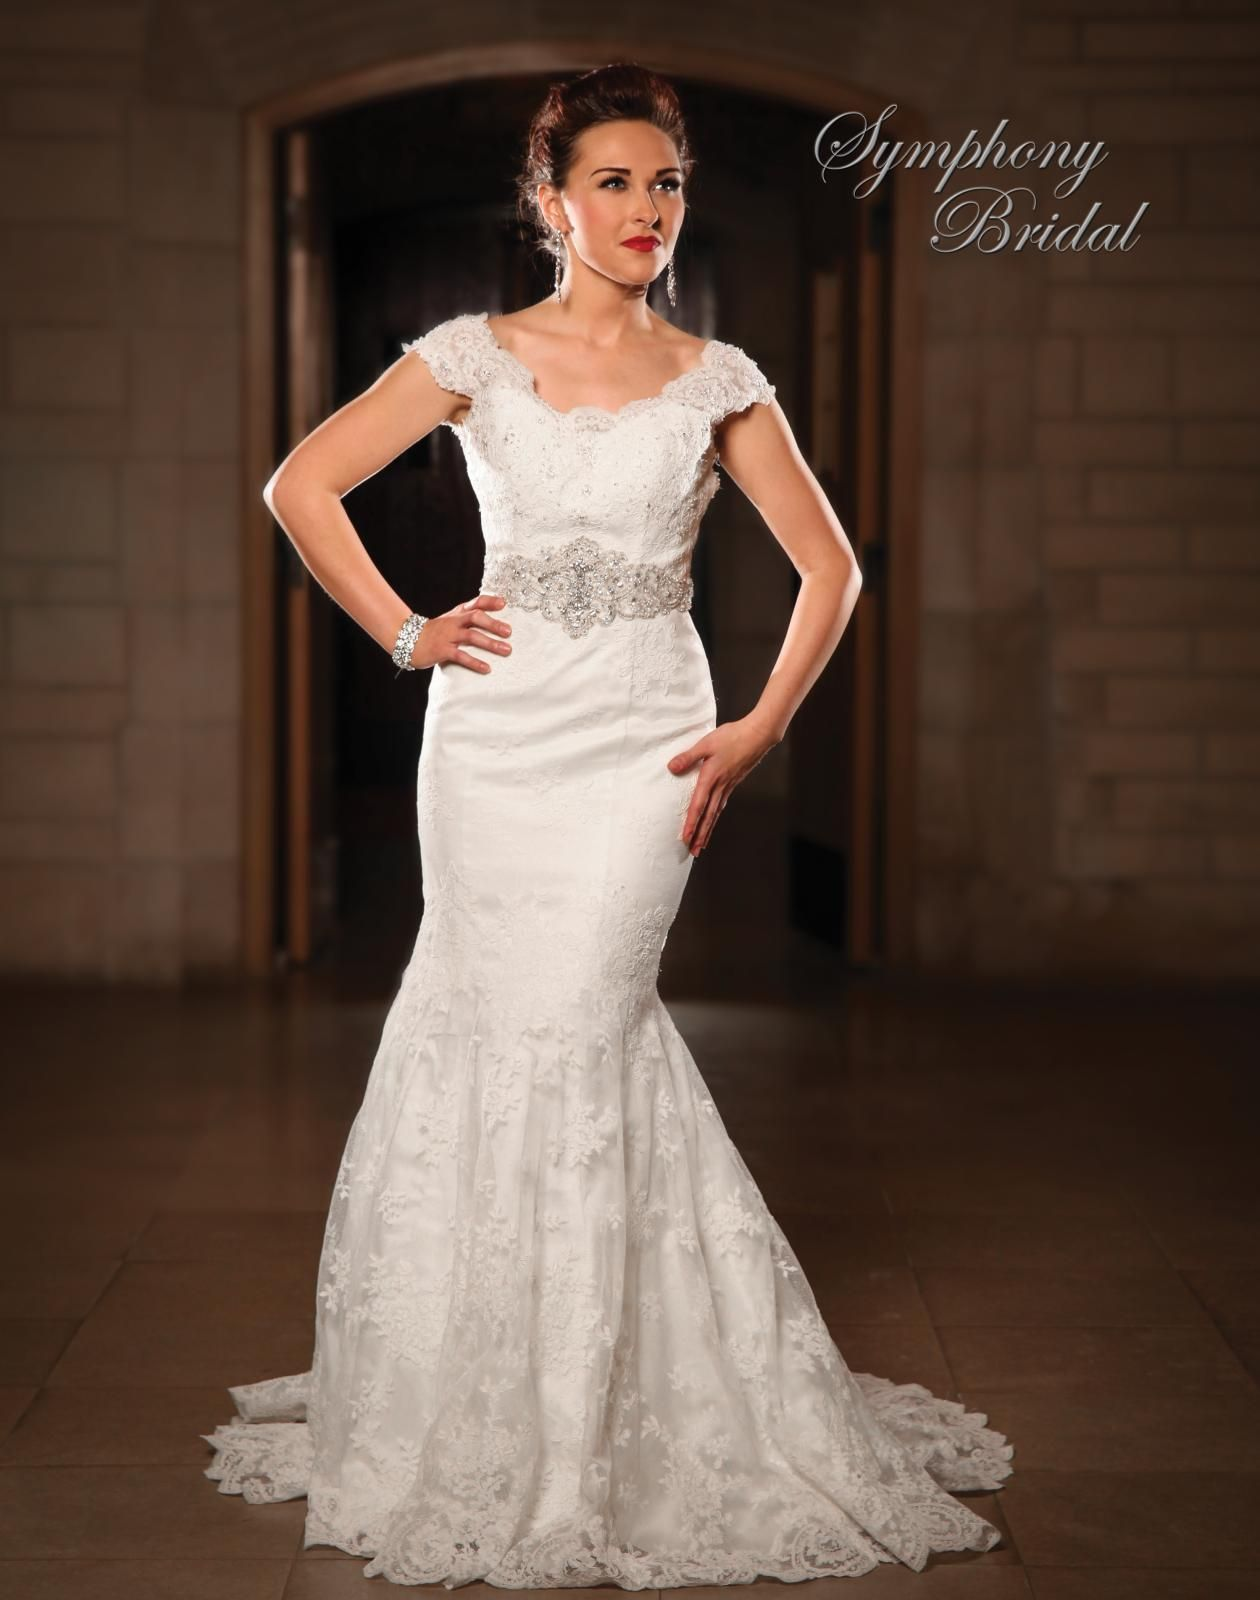 44+ Plus size gothic wedding gowns for sale info